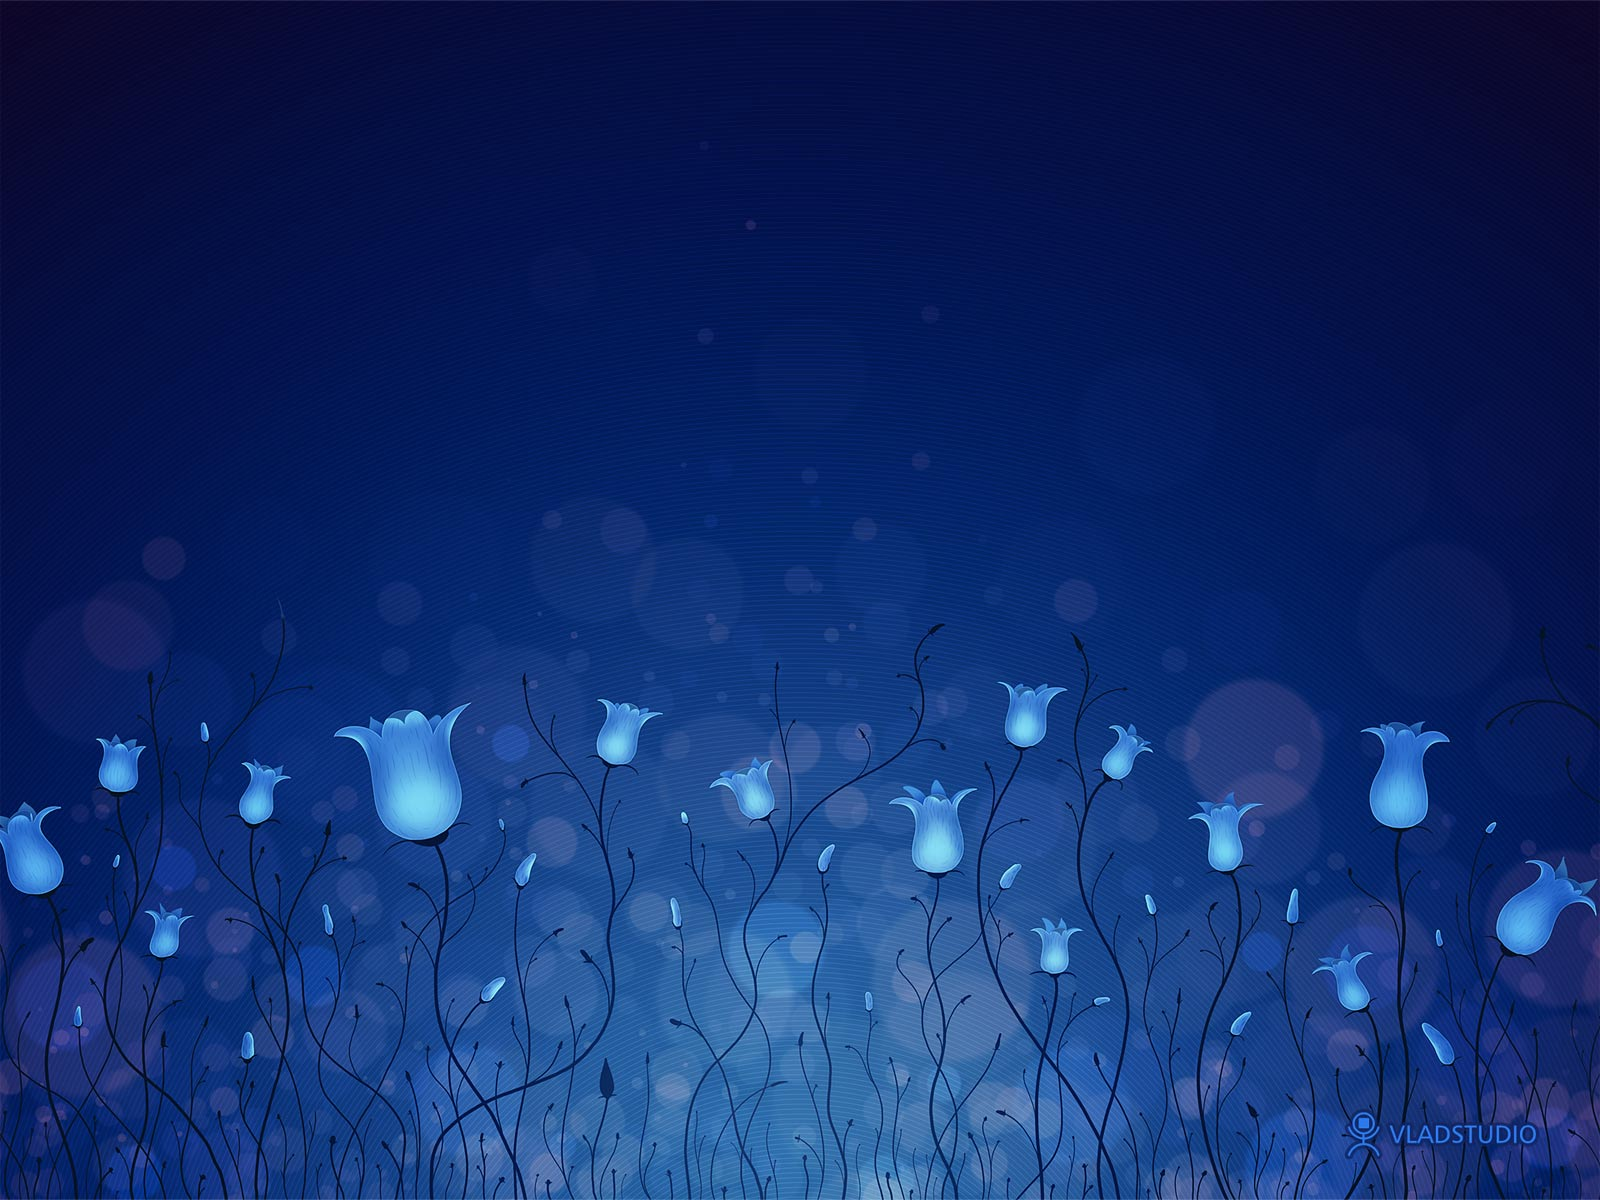 http://2.bp.blogspot.com/-Sl7X5uXEgJs/ThQMk9mJiHI/AAAAAAAAAYg/M6bygkSM1nU/s1600/blue_lighting_flowers-normal.jpg